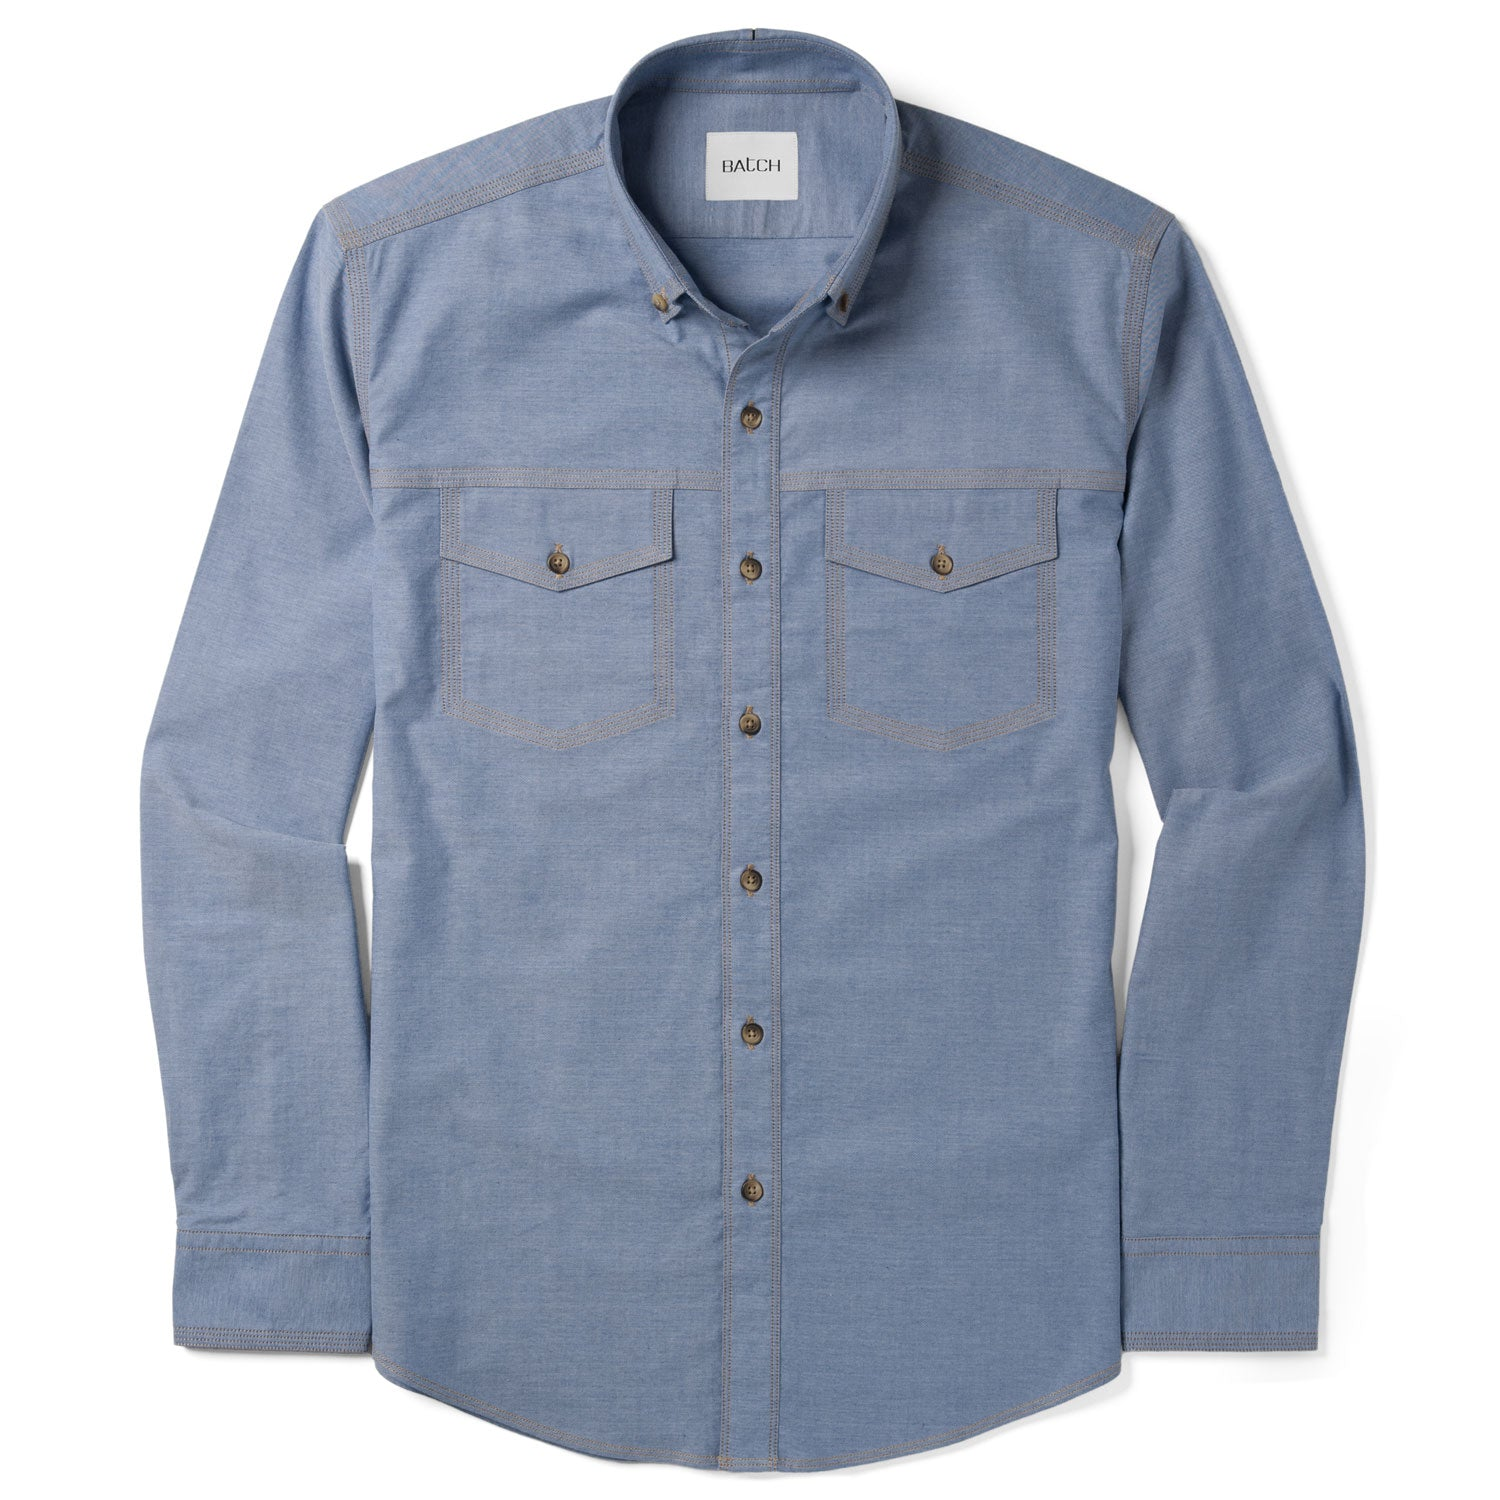 Author Casual Shirt Two Pockets – Harbor Blue Stretch Oxford